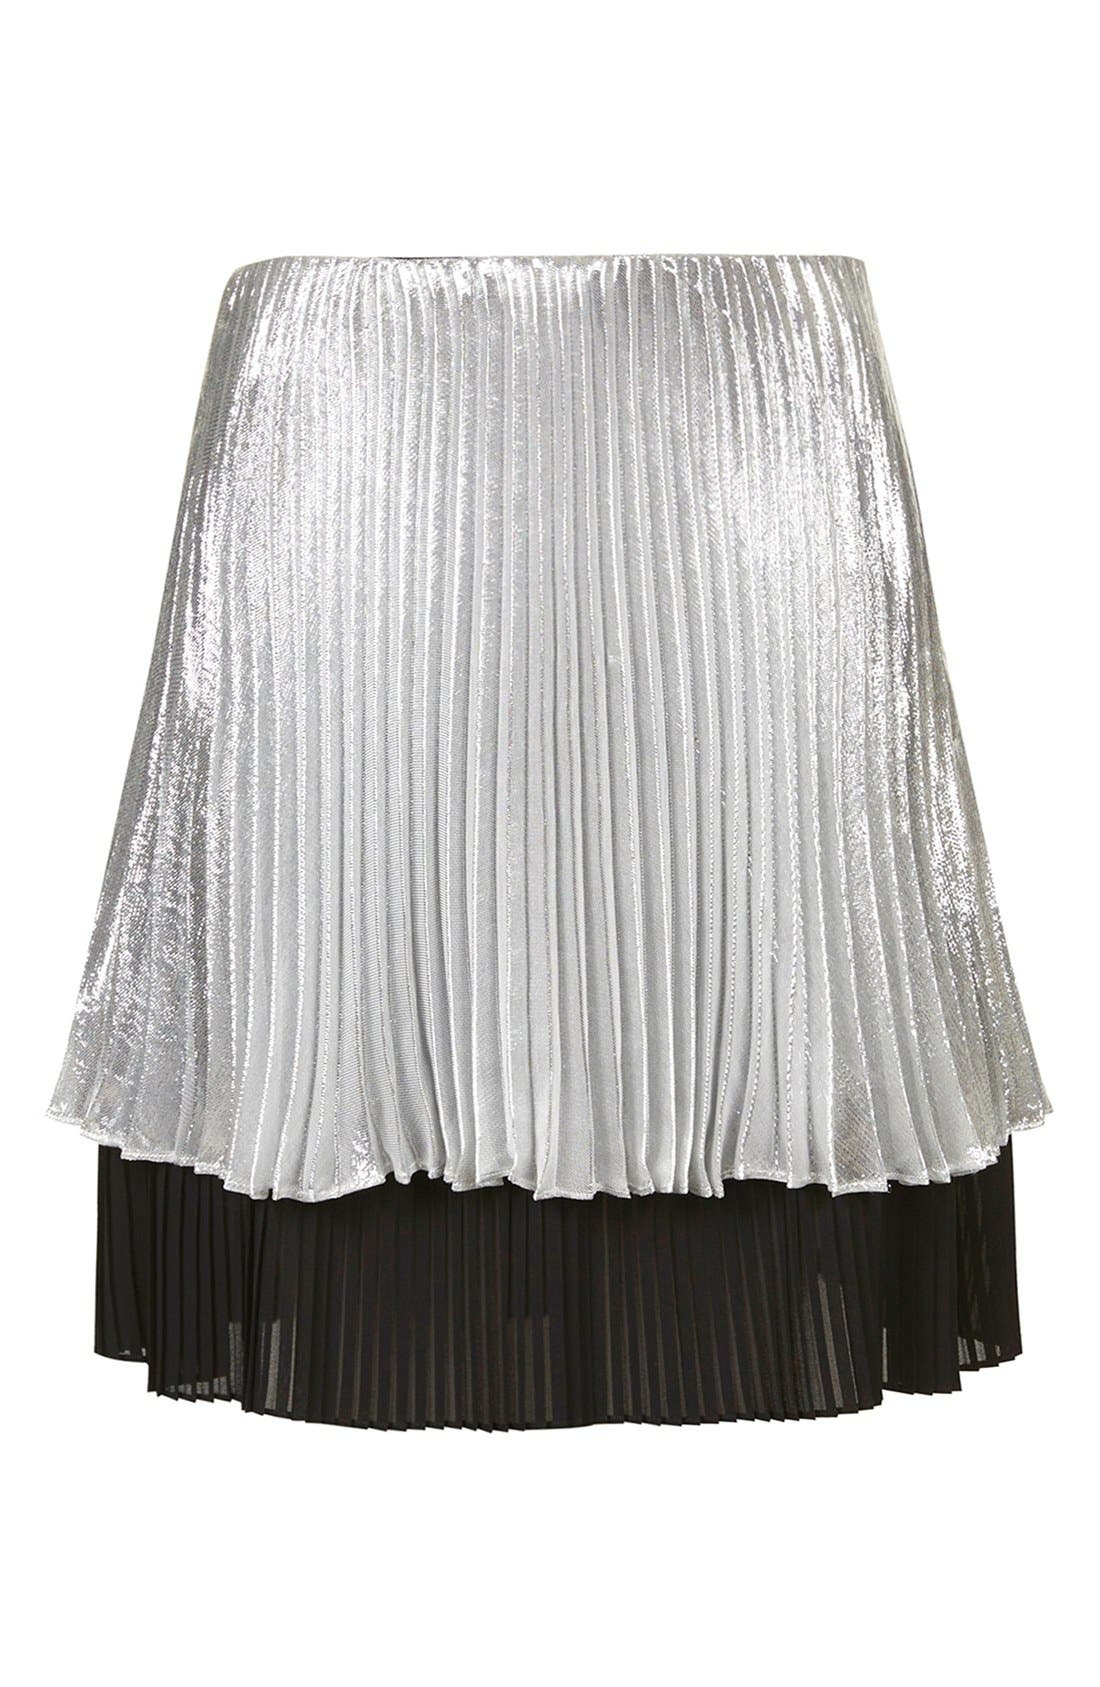 'Sun Ray' Two Tier Pleated Skirt,                             Alternate thumbnail 6, color,                             040